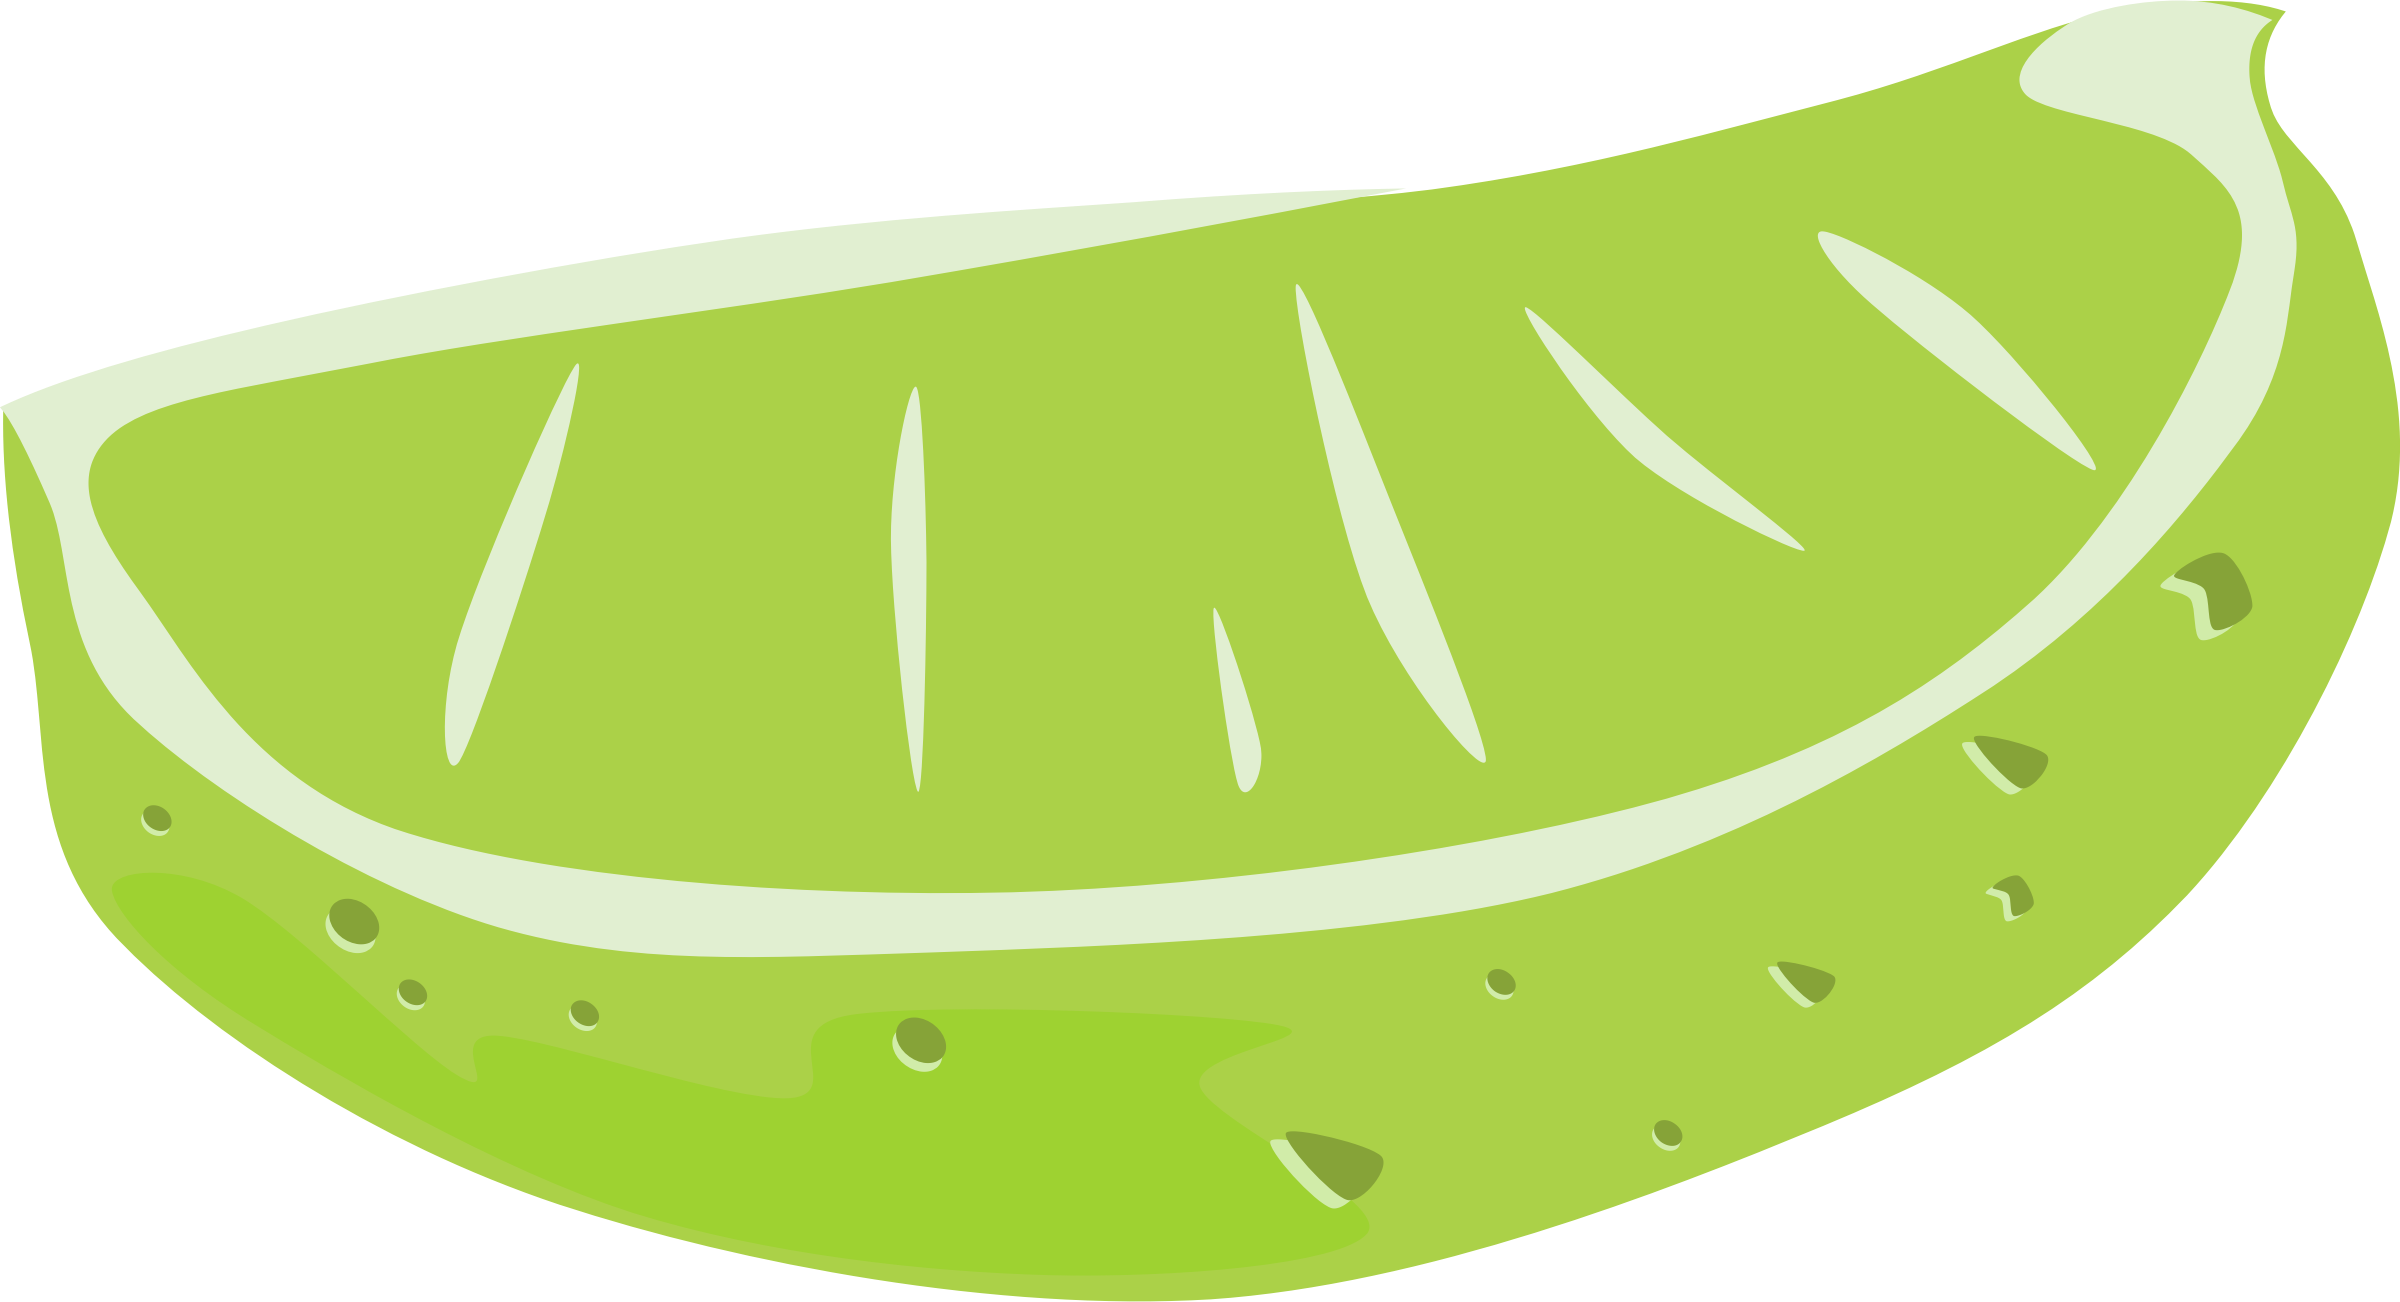 Jelly Bean clipart lima bean Lime variations Clipart variations Lime